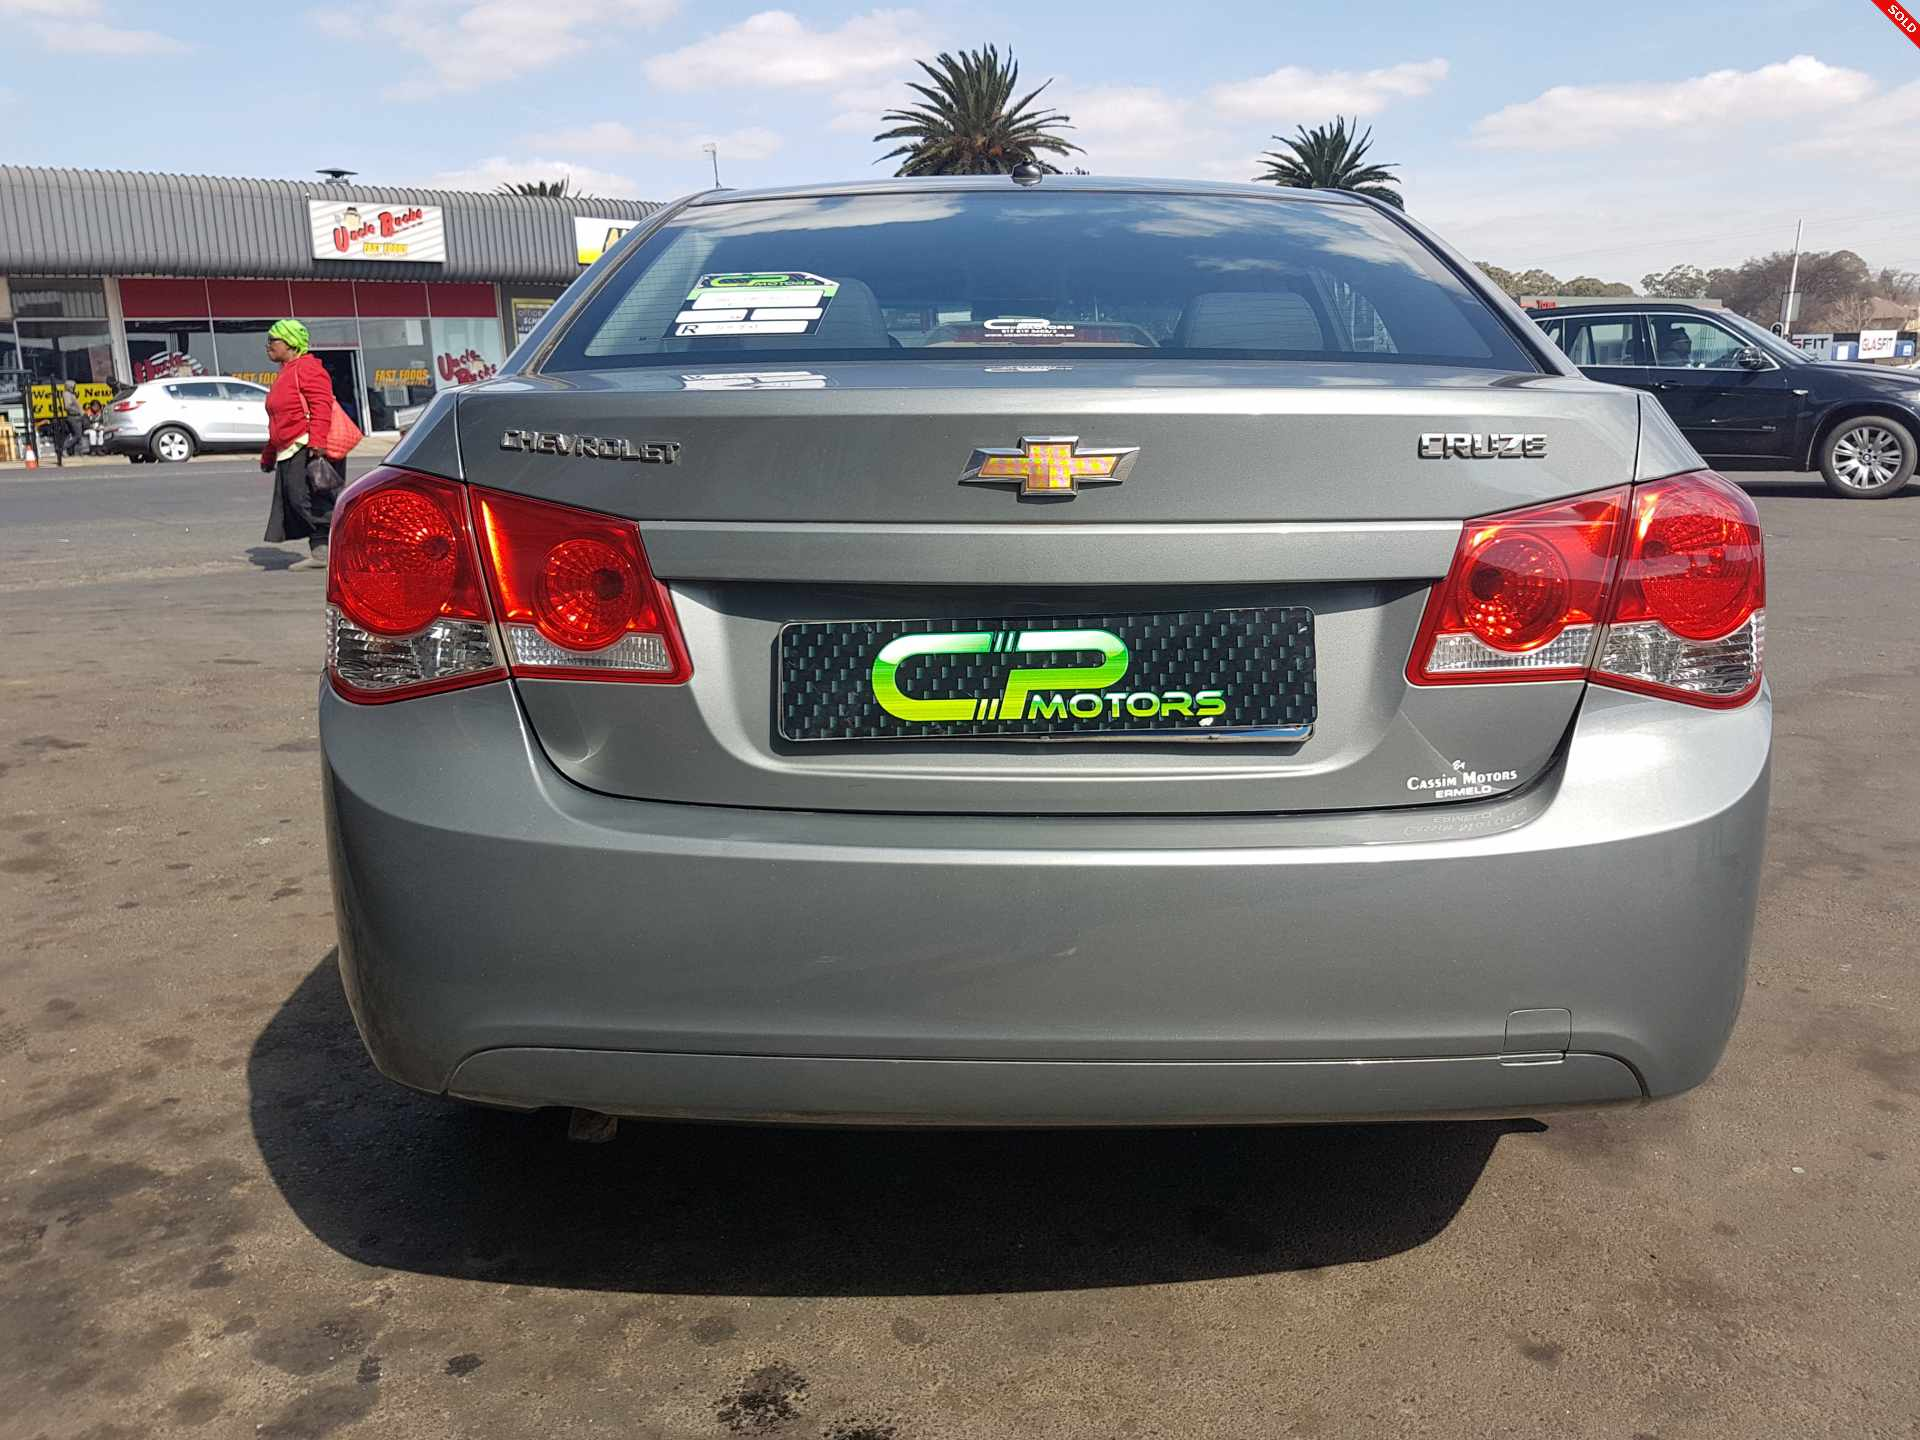 specifications of this chevrolet cruze